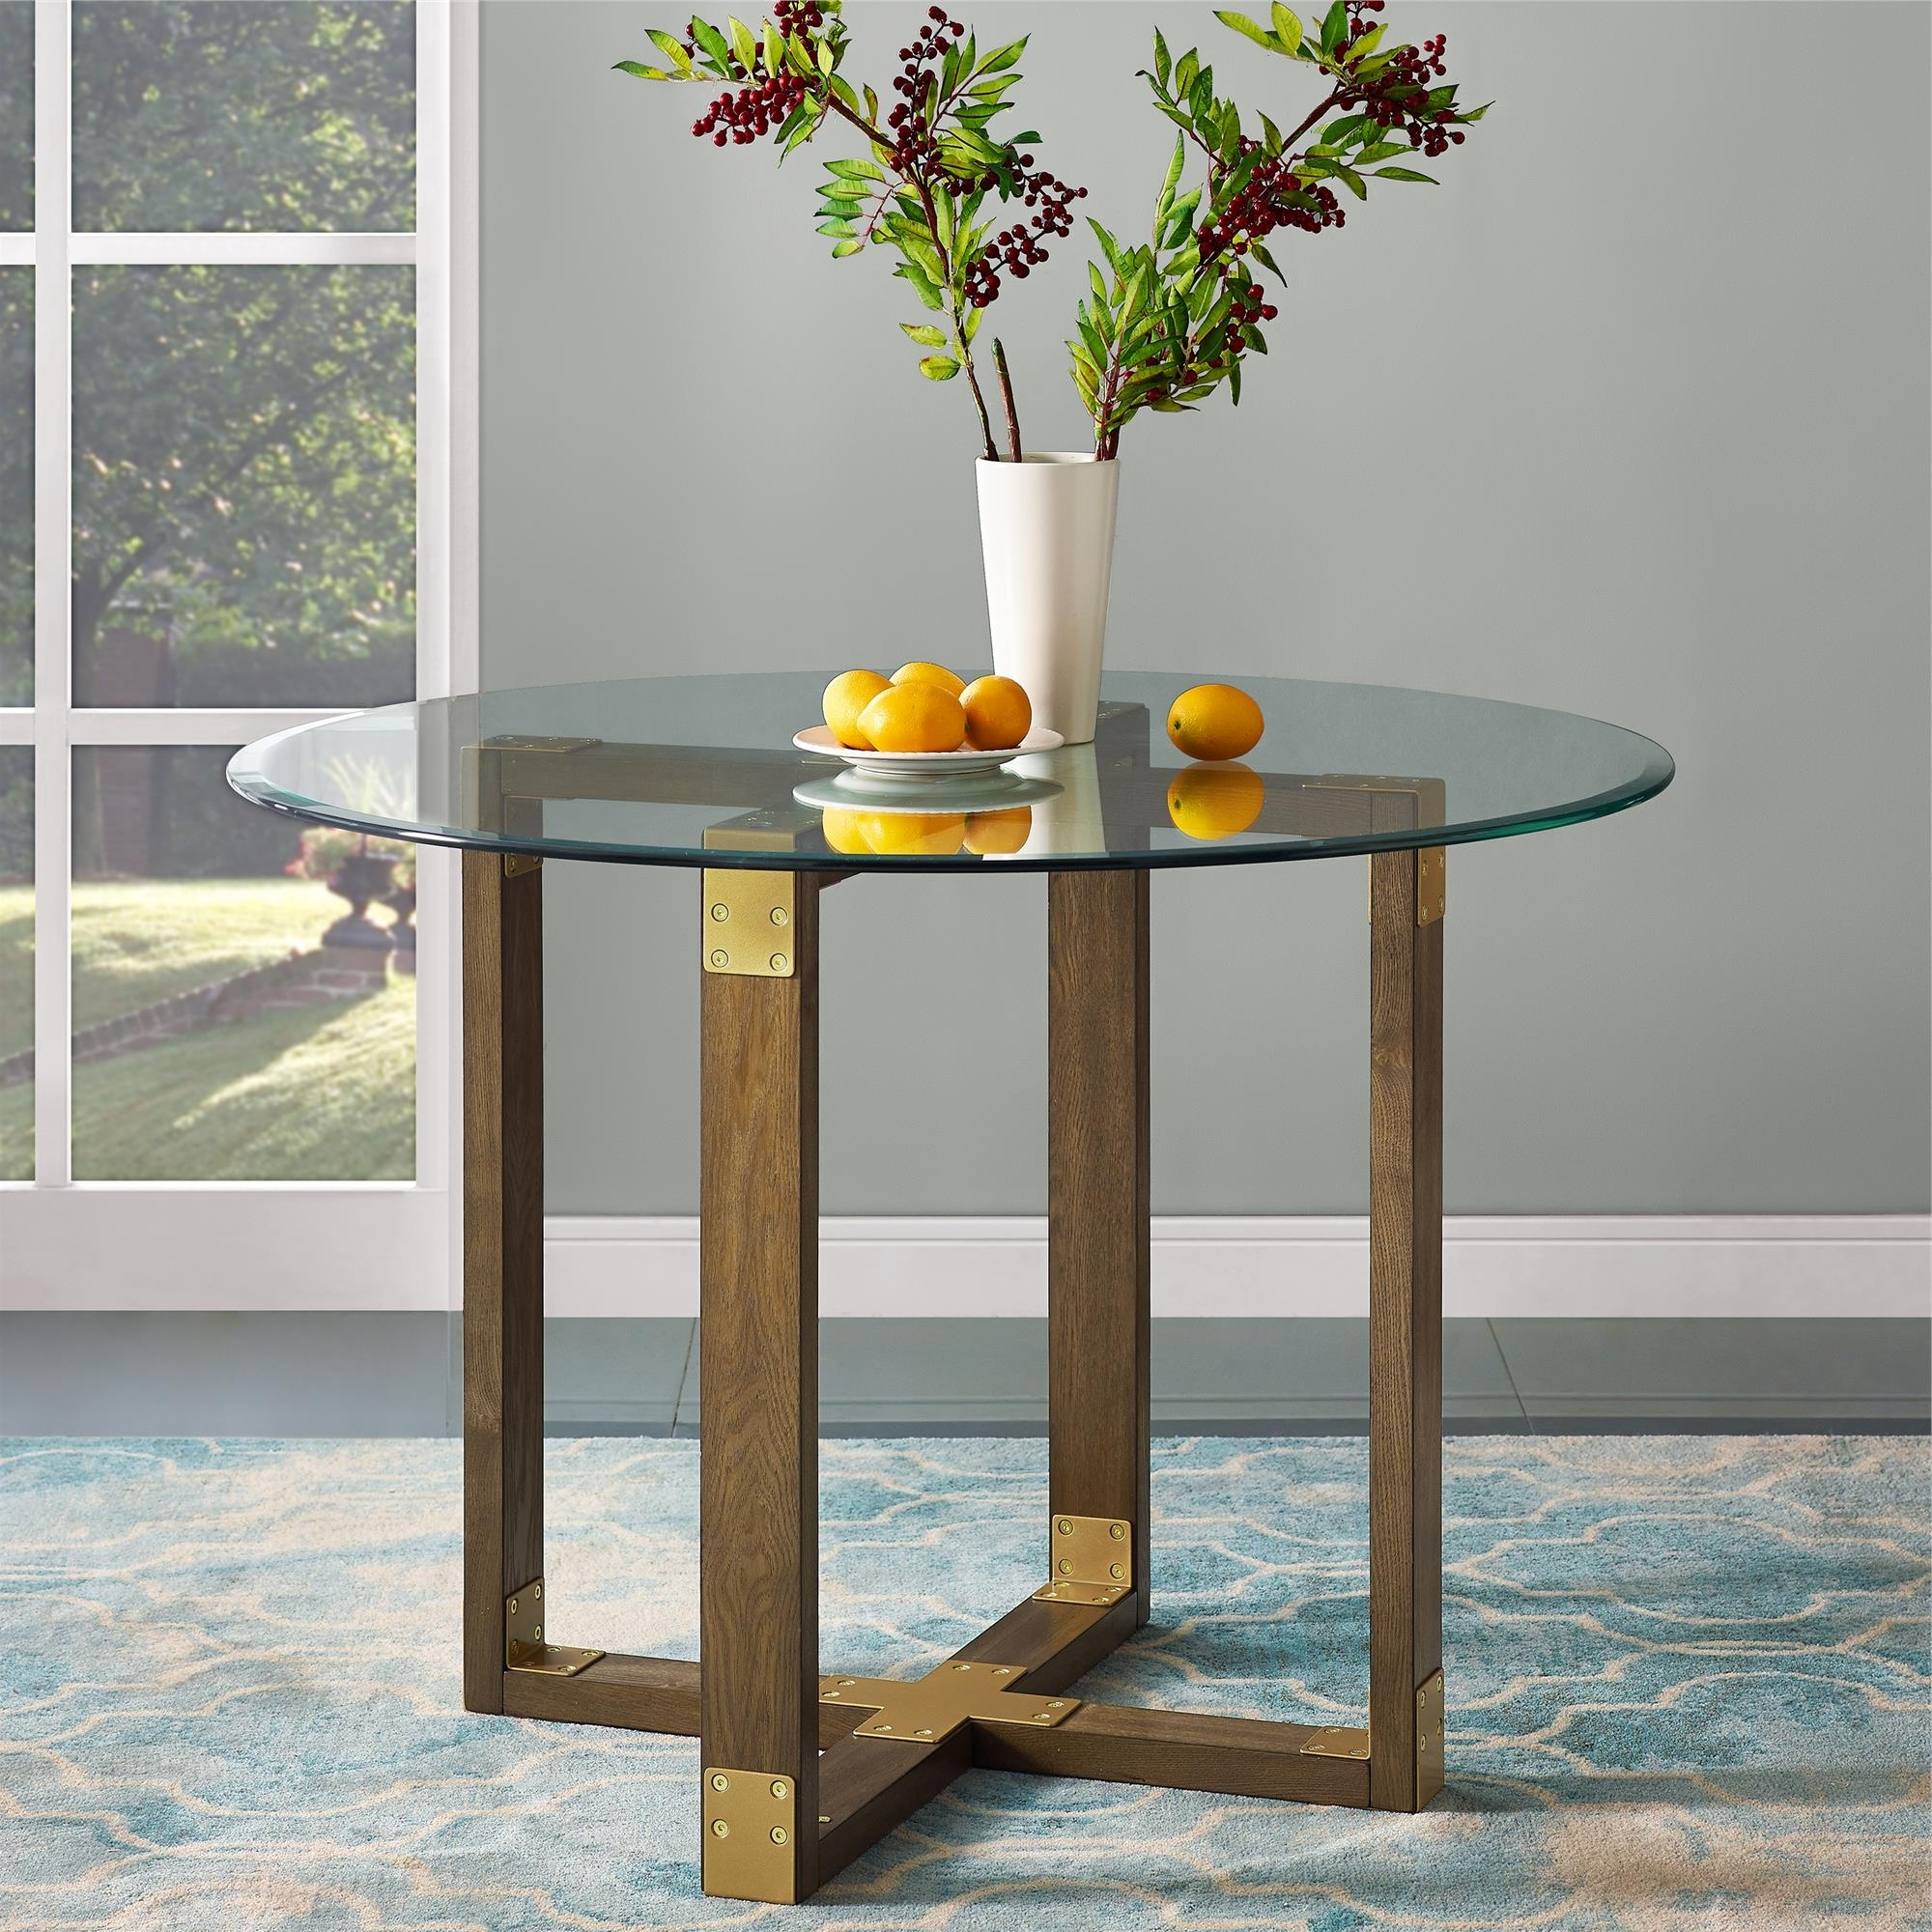 Dorel Living Bronx Glass Top Dining Table, Rustic Oak (View 20 of 25)